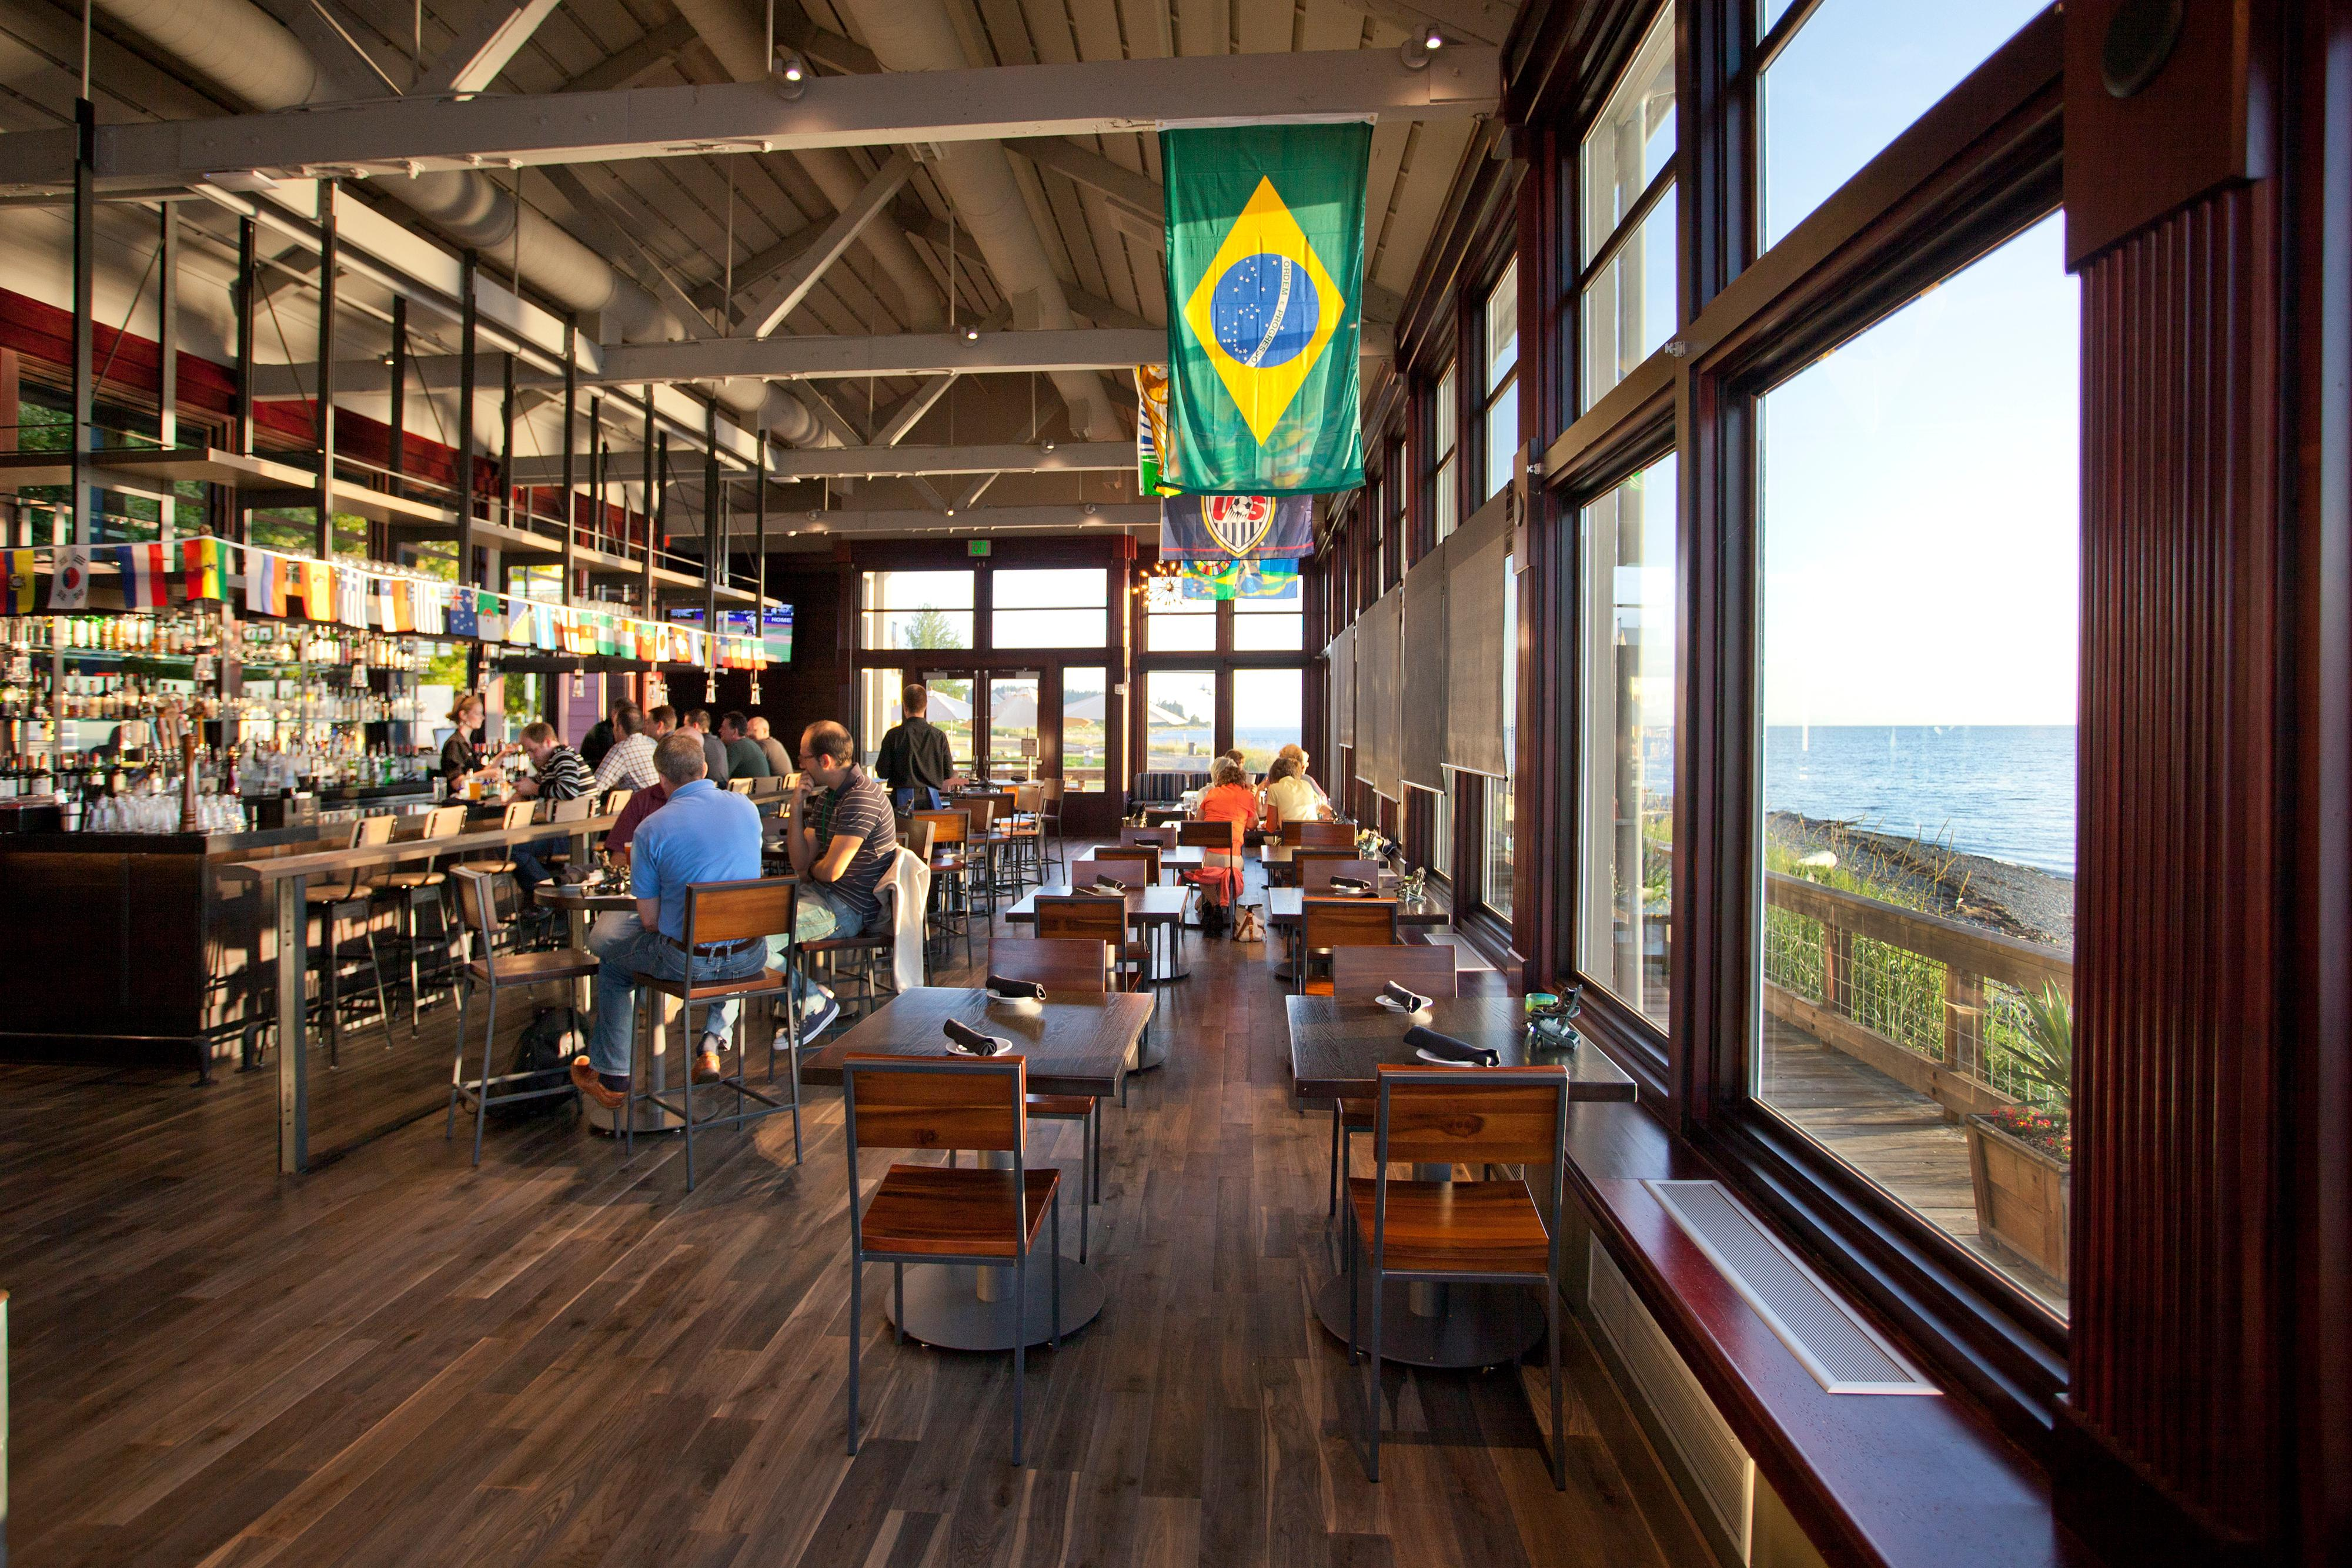 Enjoy a casual atmosphere and delicious food at Packers Oyster Bar.